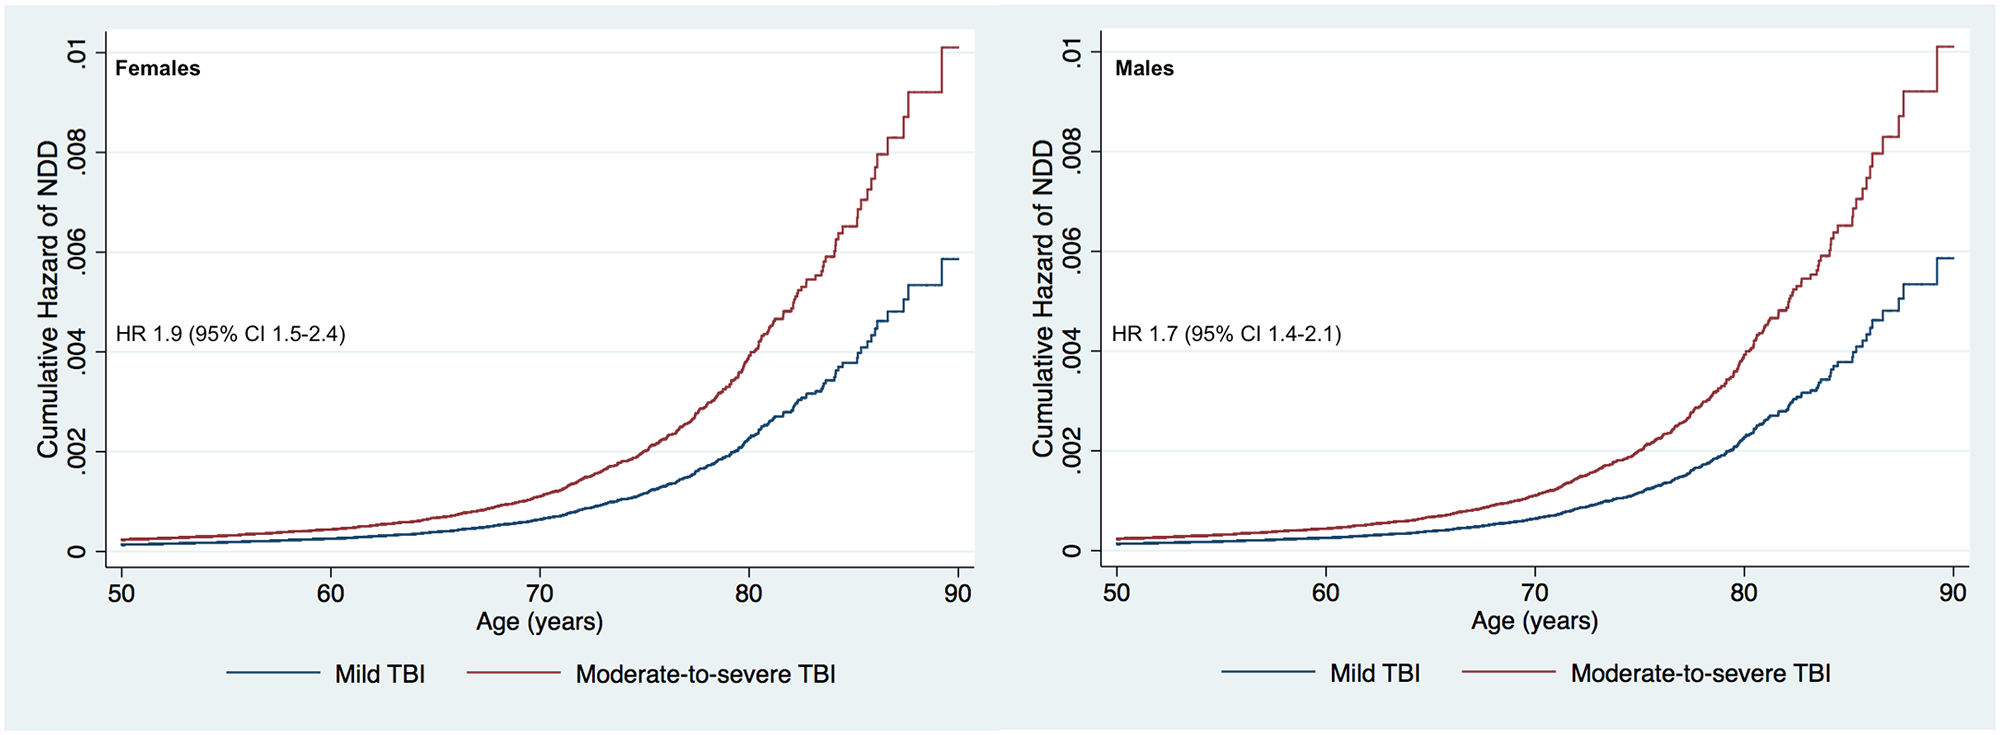 Cumulative hazard risk comparison for persons with a history of moderate-to-severe traumatic brain injury versus mild traumatic brain injury (adjusted for age, sex, level of education, and socioeconomic group).